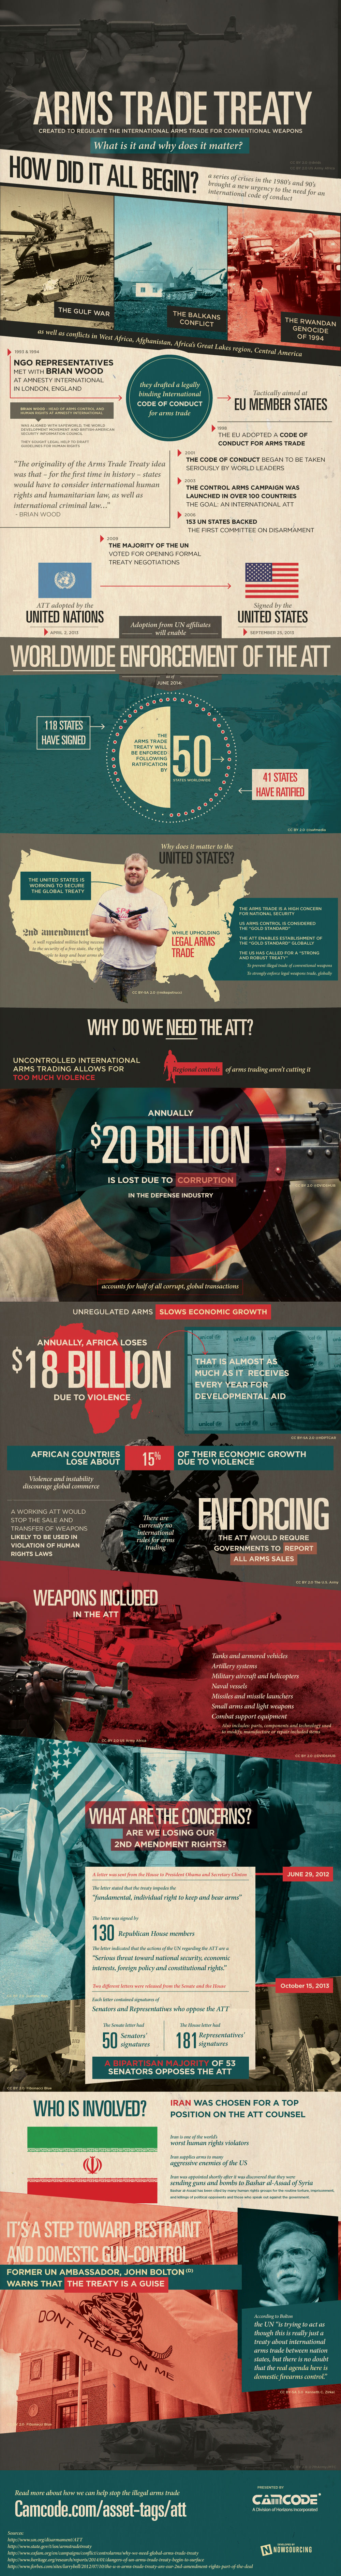 Learn about the united nations arms trade treaty and why it matters